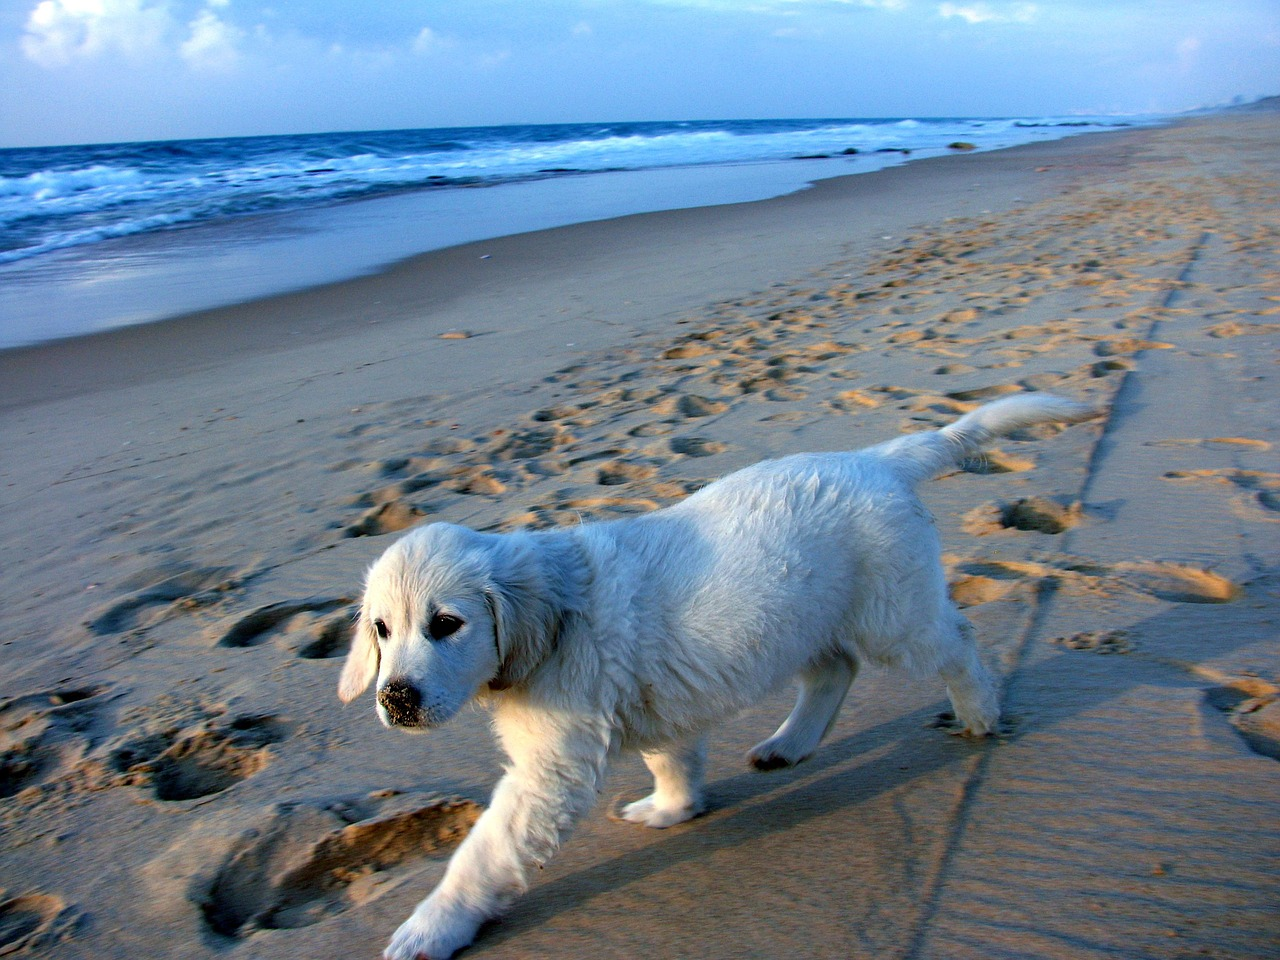 puppy,coast,sand,waves,blue,white,israel,retriever,dog,pet,animal,beach,sea,cute,fun,outdoor,canine,doggy,friend,tranquil,companion,sweet,sky,free pictures, free photos, free images, royalty free, free illustrations